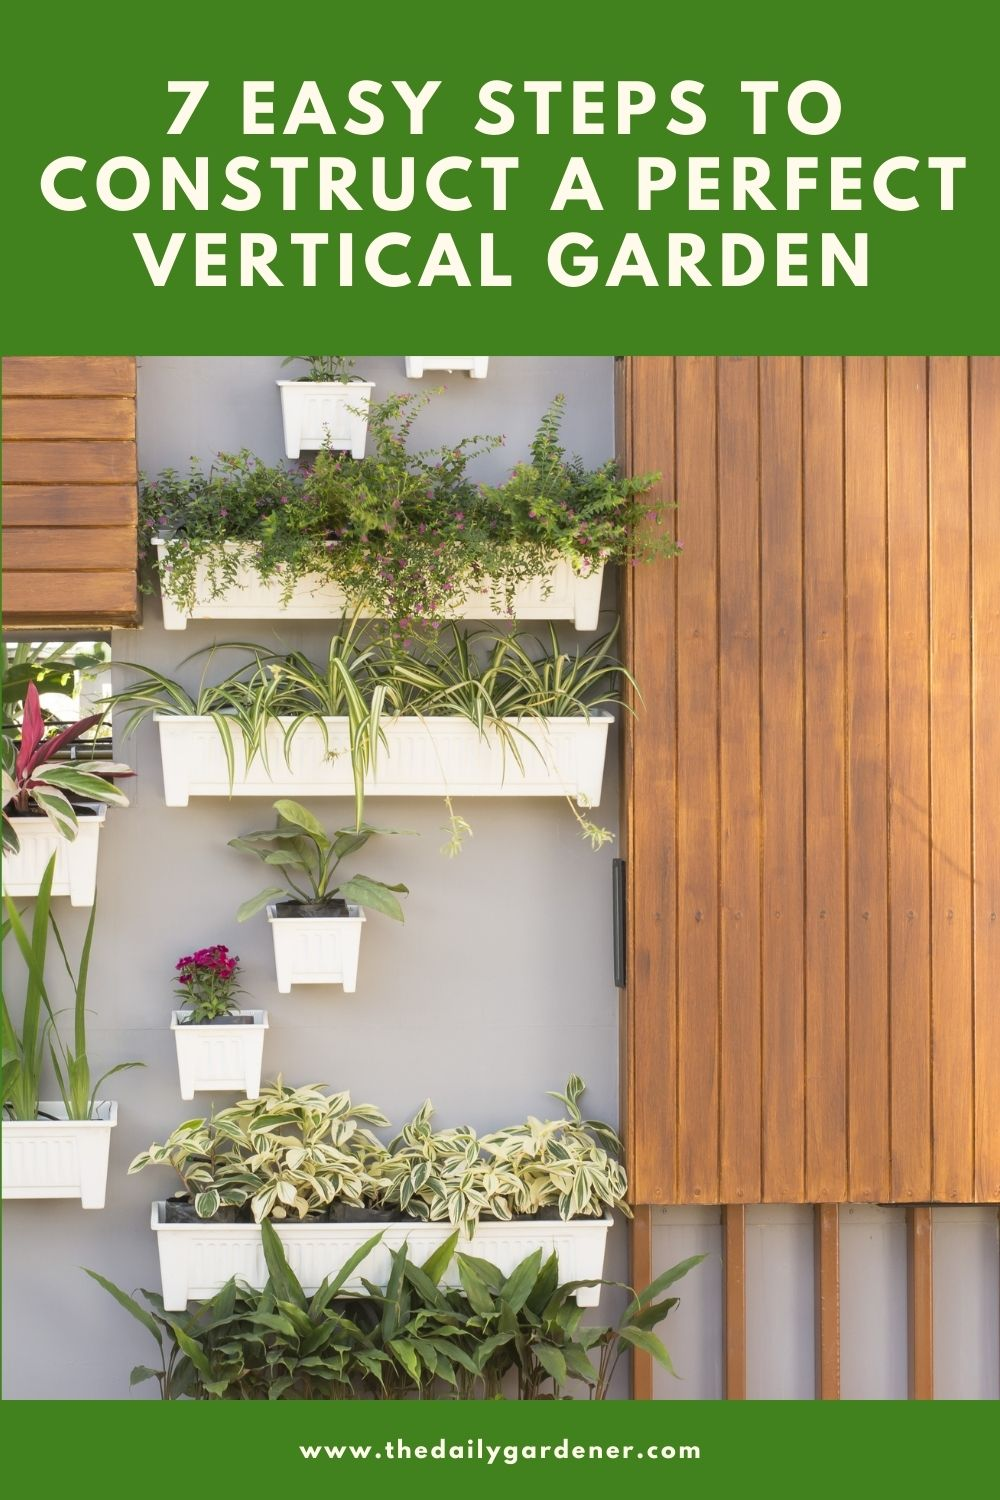 7 Easy Steps to Construct a Perfect Vertical Garden 2